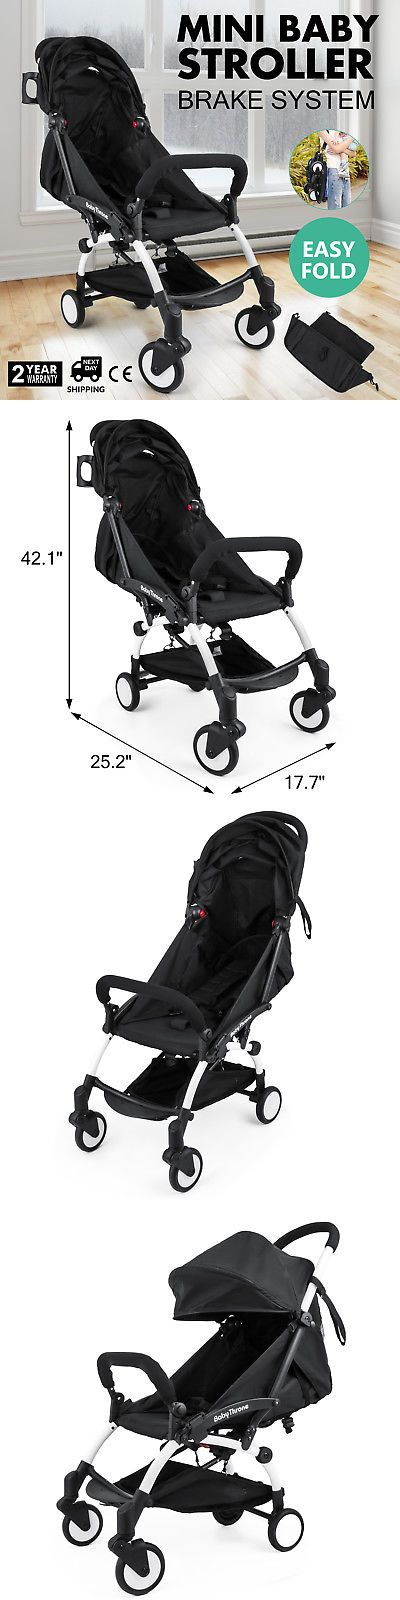 Other Stroller Accessories 180917: Mini Baby Stroller Travel System Small Pushchair Infant Carriage Flodable -> BUY IT NOW ONLY: $113.98 on eBay!